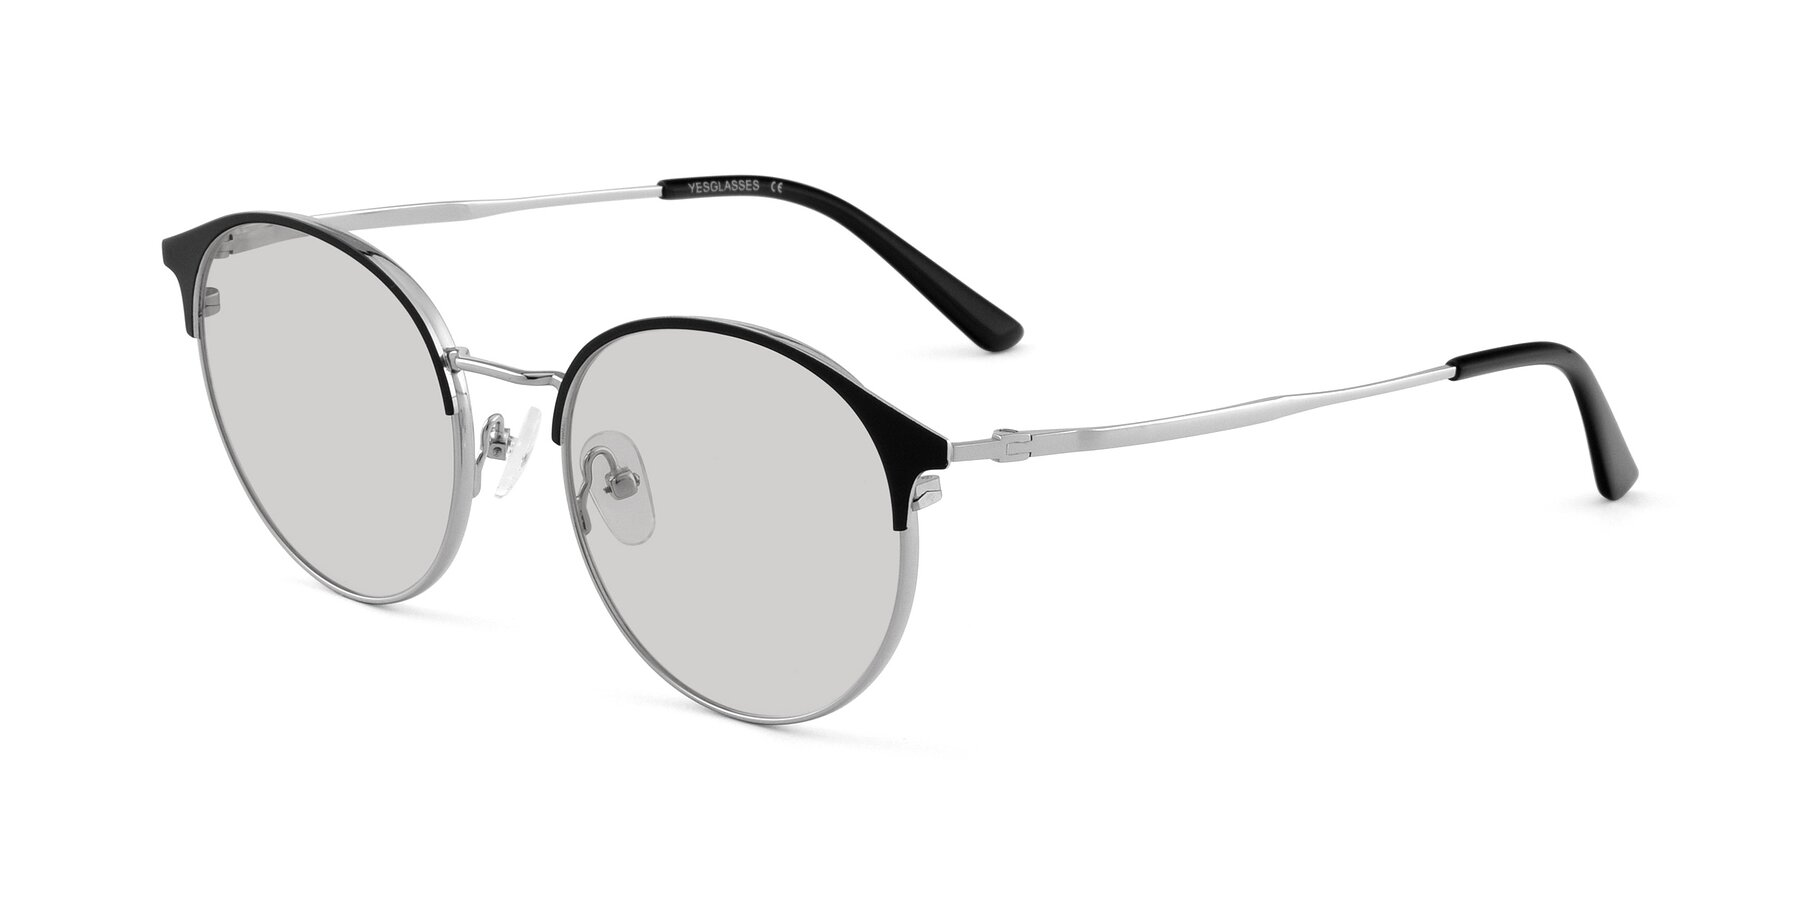 Angle of Berkley in Black-Silver with Light Gray Tinted Lenses